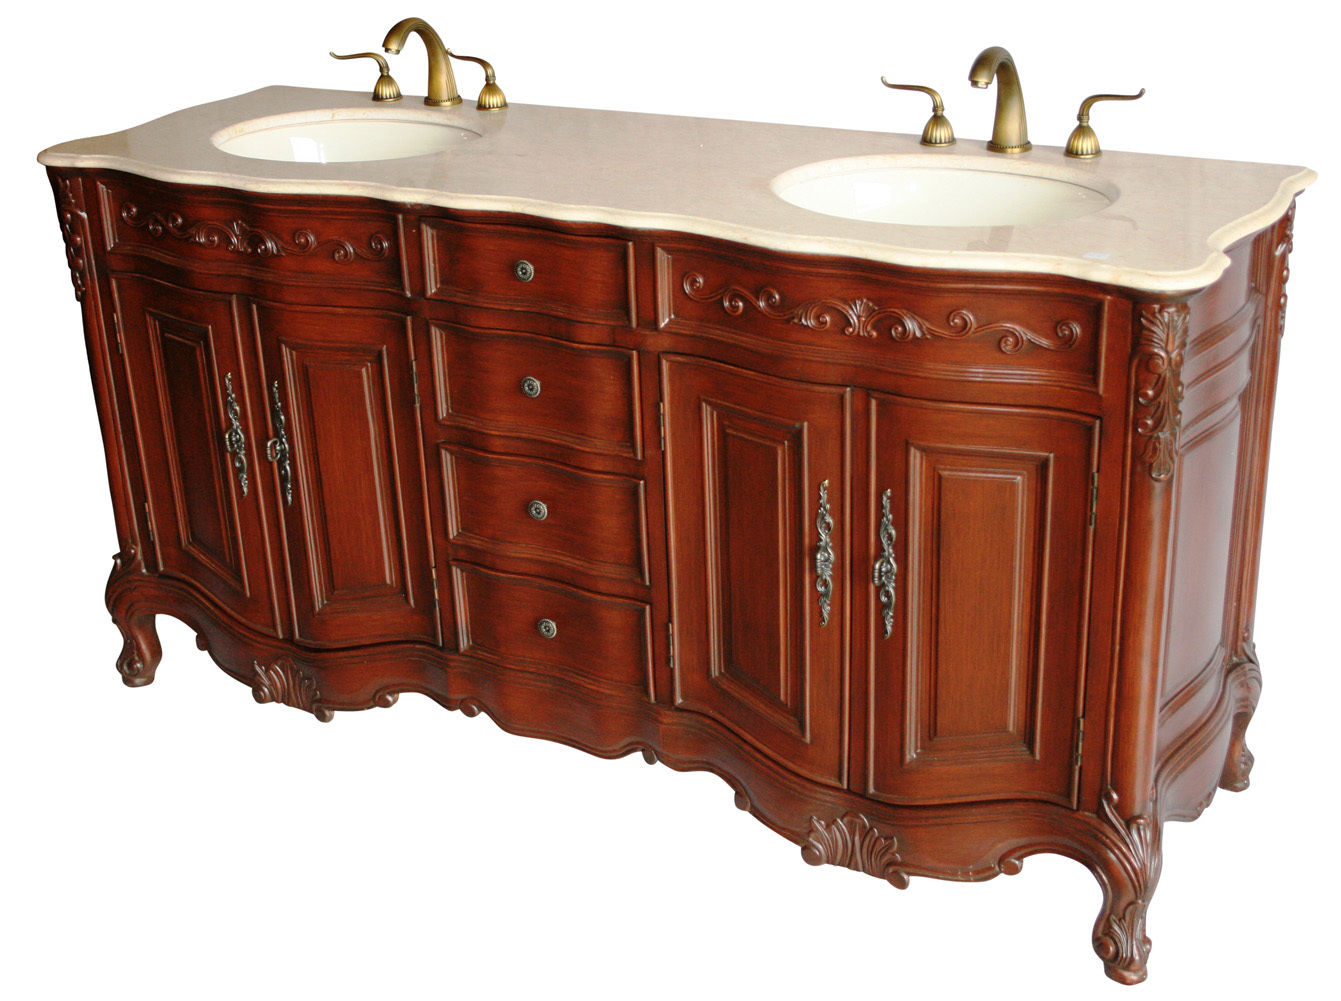 "68 inch Double Sink Bathroom Vanity Walnut Finish (68""Wx22 ..."